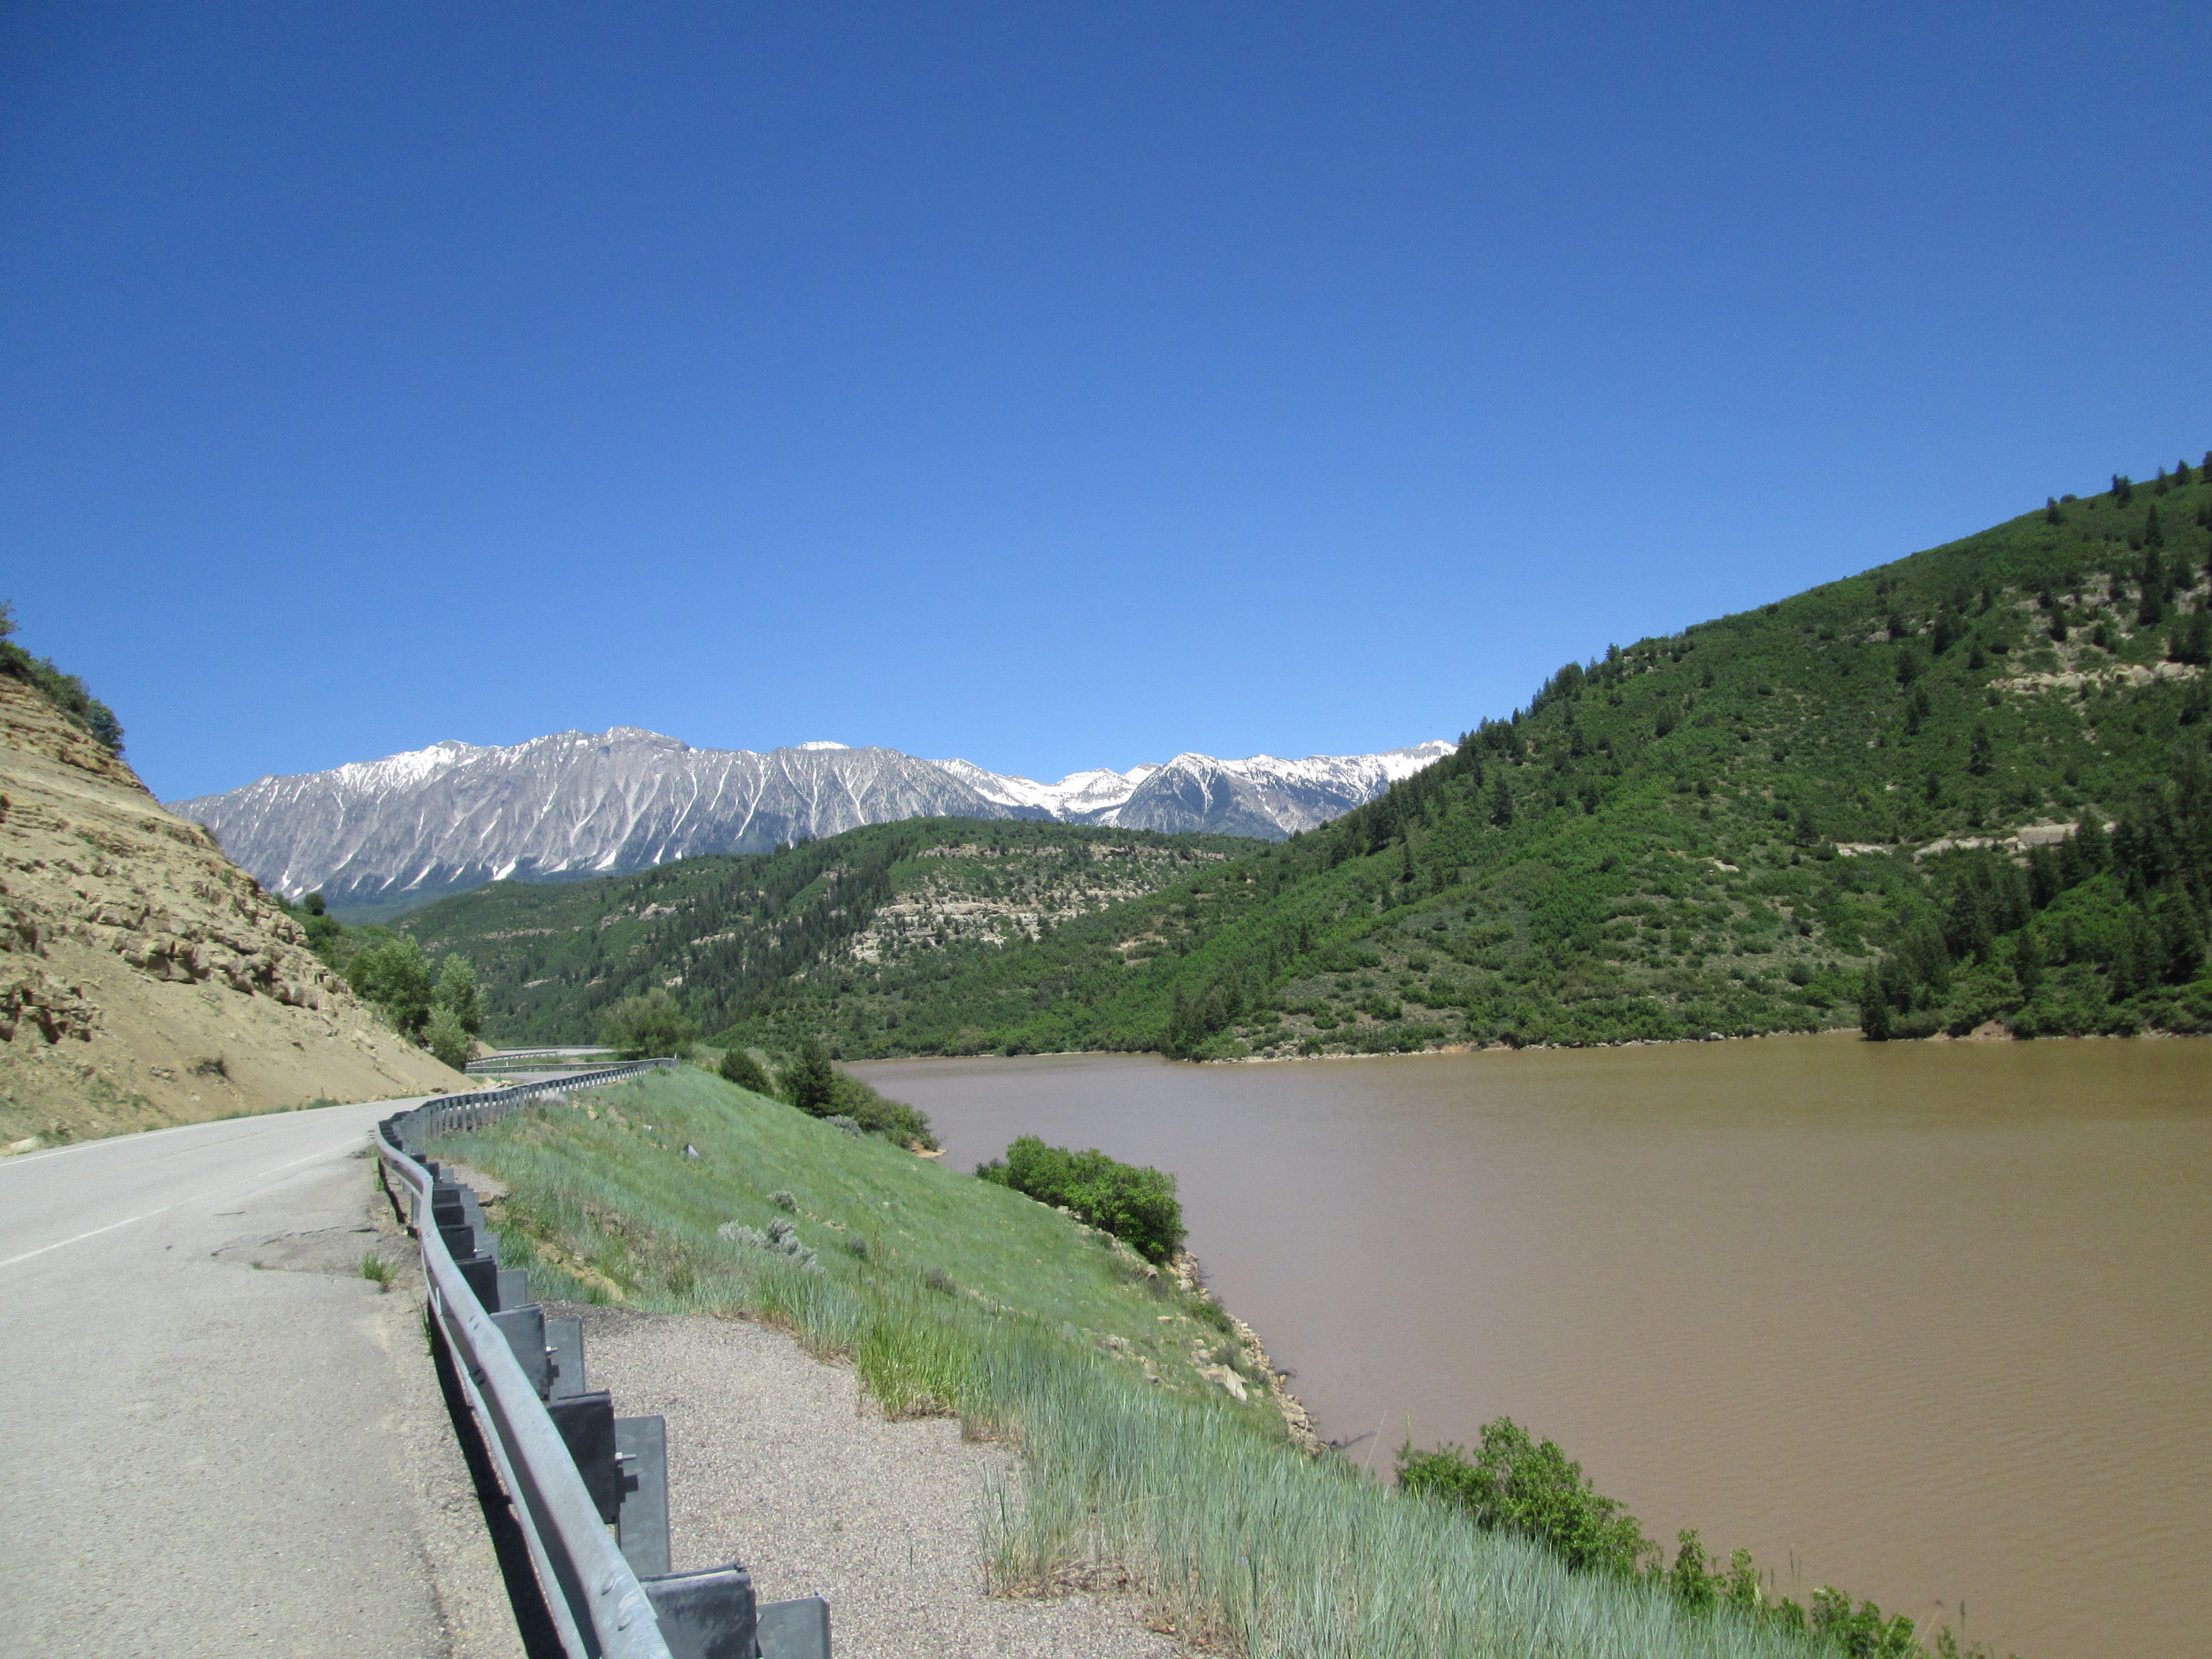 As usual, Paonia Reservoir had very rapidly filled, having been a mere puddle on April 26. Some lingering snowpack remained on the west aspects of the Ragged Mountains, in the distance.